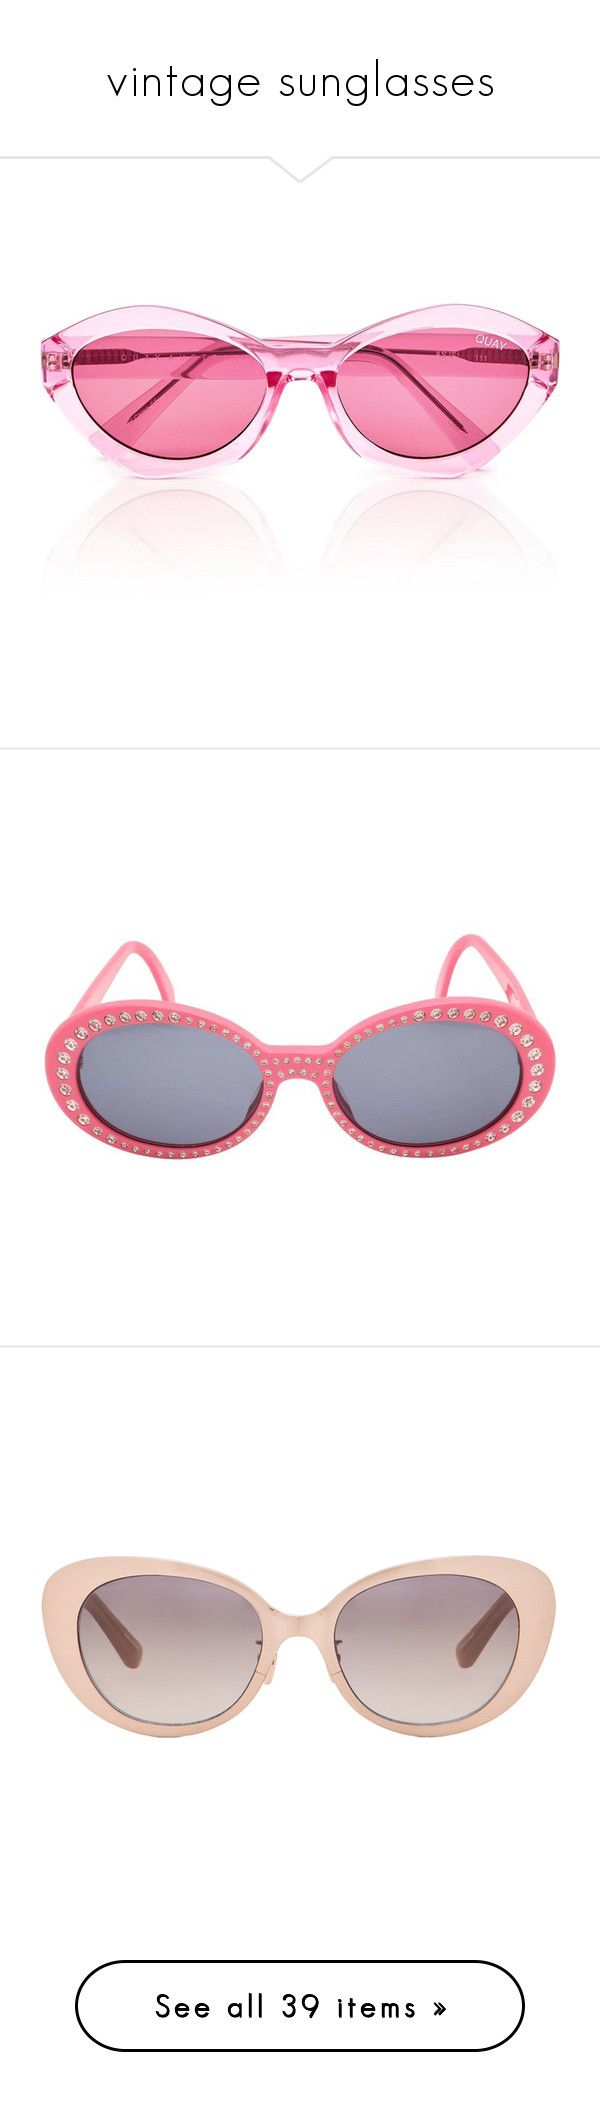 """""""vintage sunglasses"""" by marcellamic ❤ liked on Polyvore featuring accessories, eyewear, sunglasses, light pink, quay glasses, light pink glasses, cat eye sunnies, cateye sunglasses, cat eye glasses and pink"""